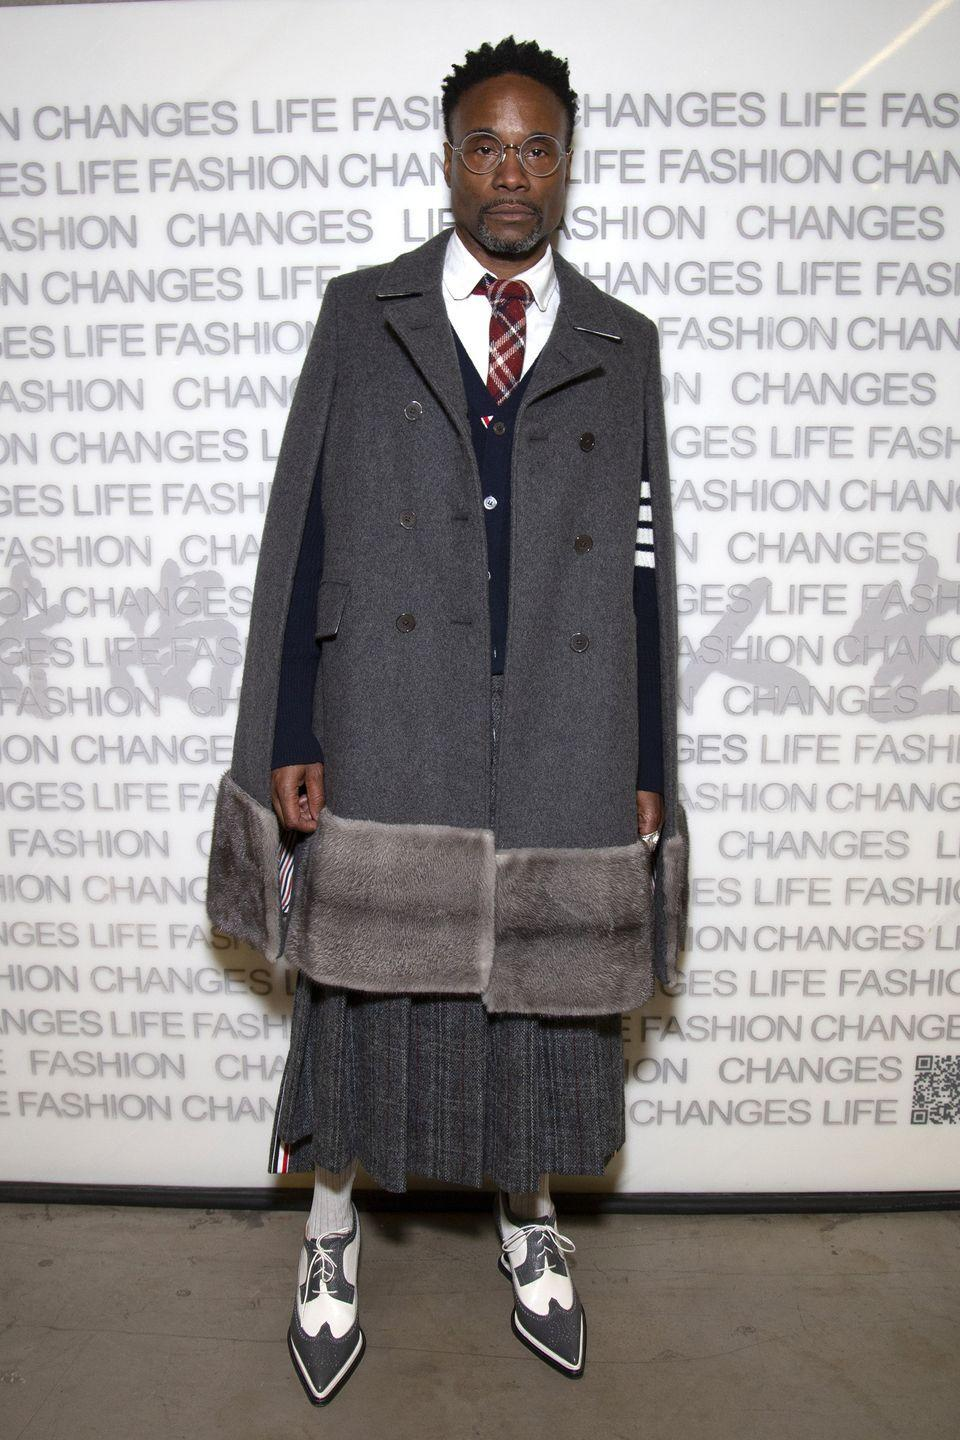 <p>The actor wore an all-grey school uniform-inspired look by Thom Browne to the Fashion Changes Lives event. The star styled the look with an oversize grey cape, navy blue cardigan, grey pleated skirt, grey and white lace-up brogues, white shirt and red tie. </p>